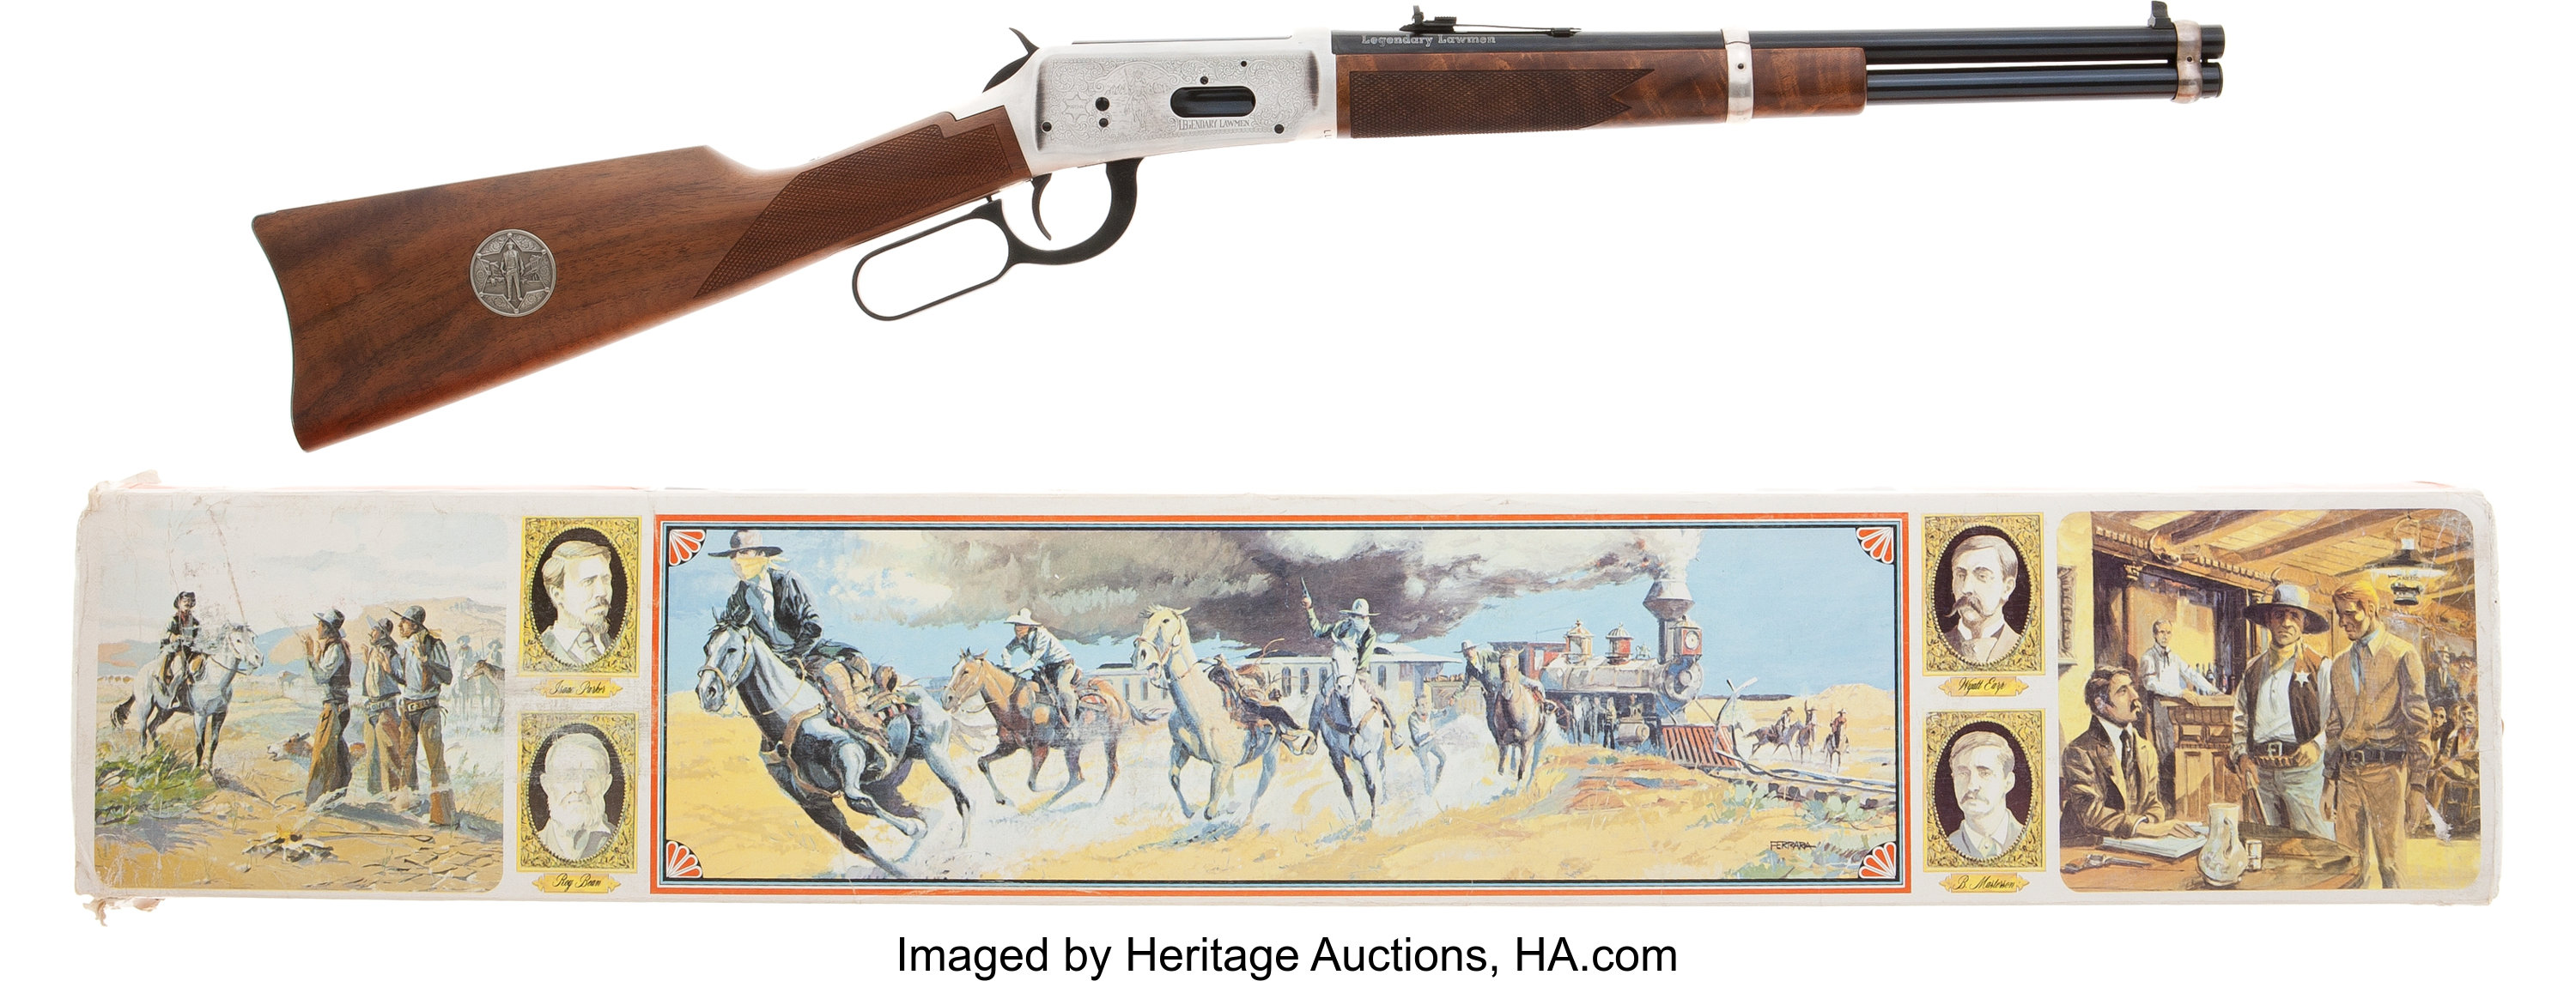 Number winchester list serial 94 Winchester Model